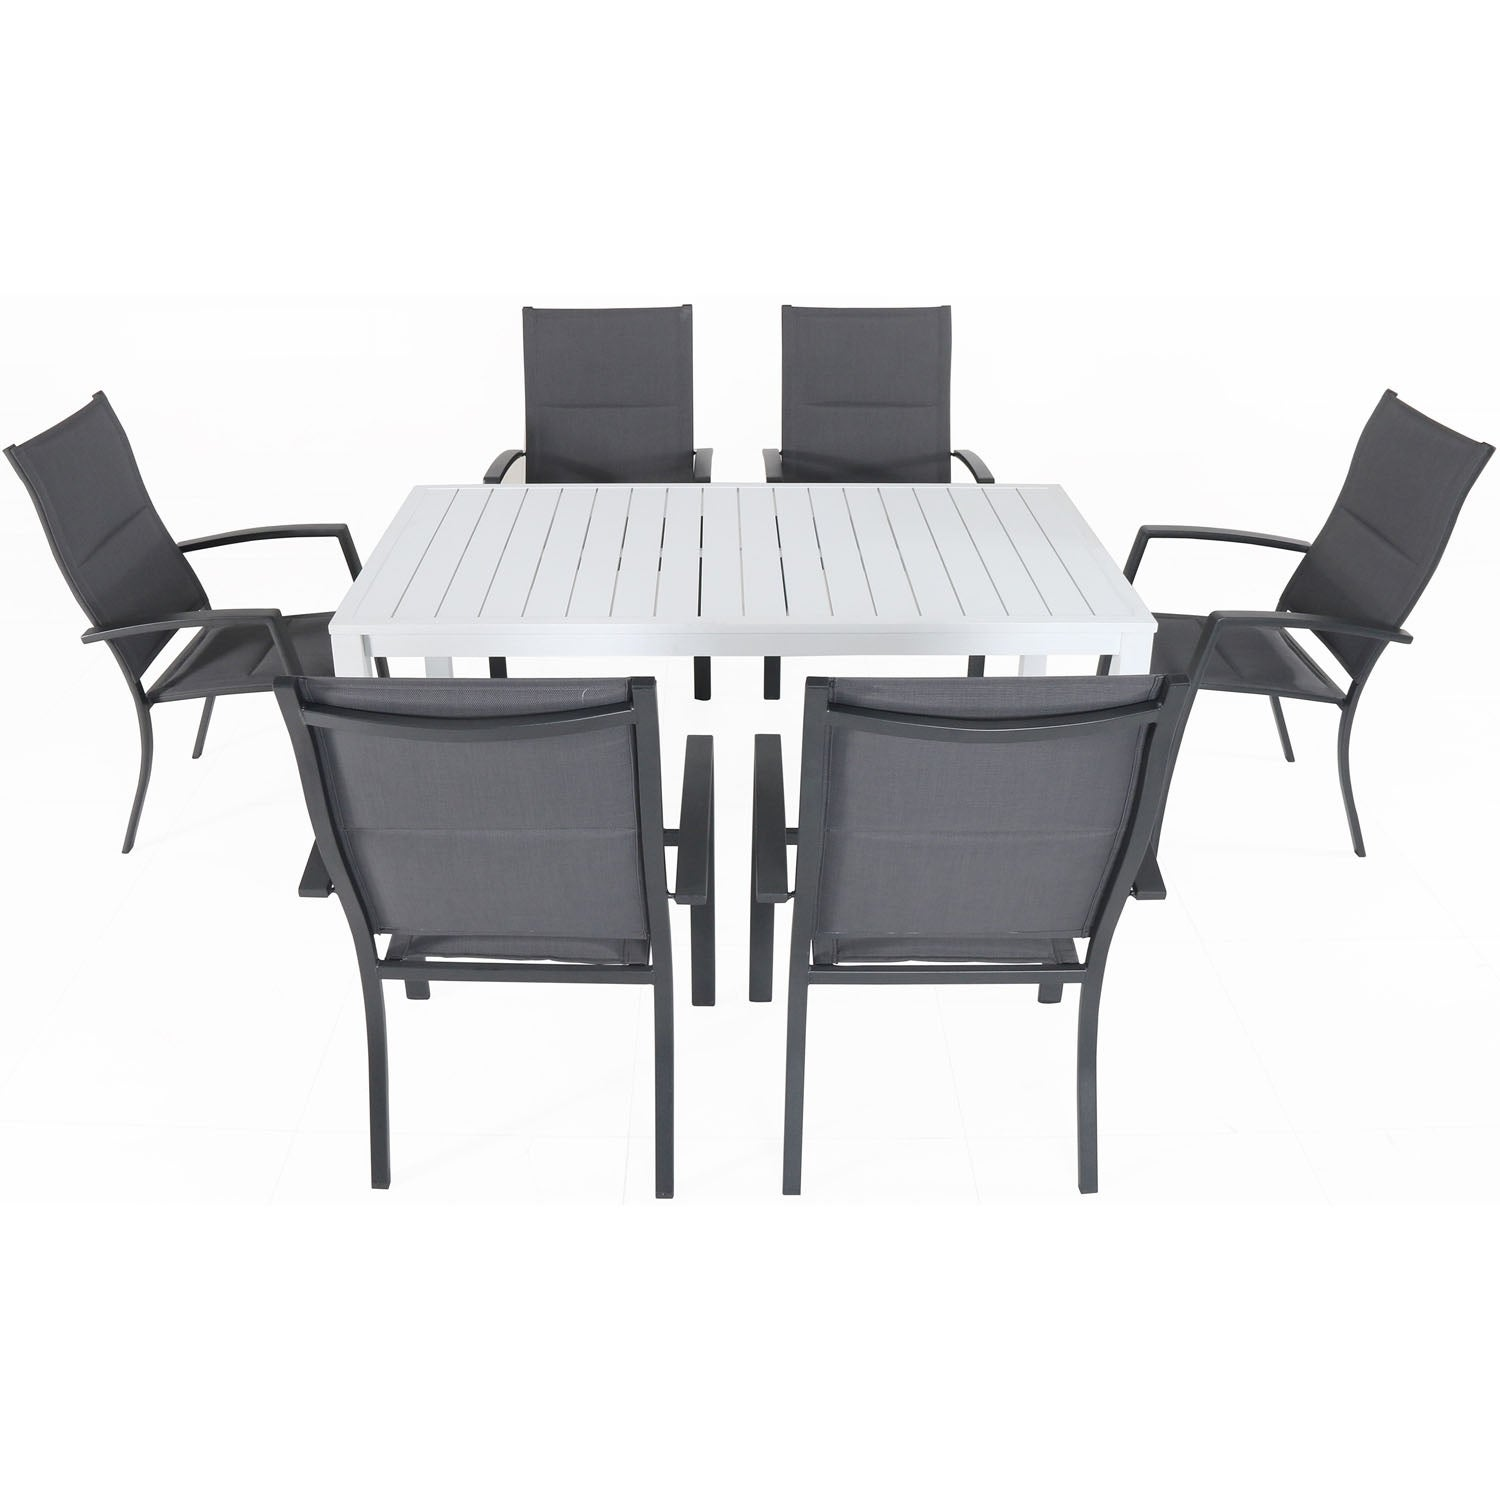 Cambridge Palermo 7 Piece Outdoor Dining Set With 6 Padded Sling Chairs In Gray And A 78 X 40 Dining Table Overstock 22419047